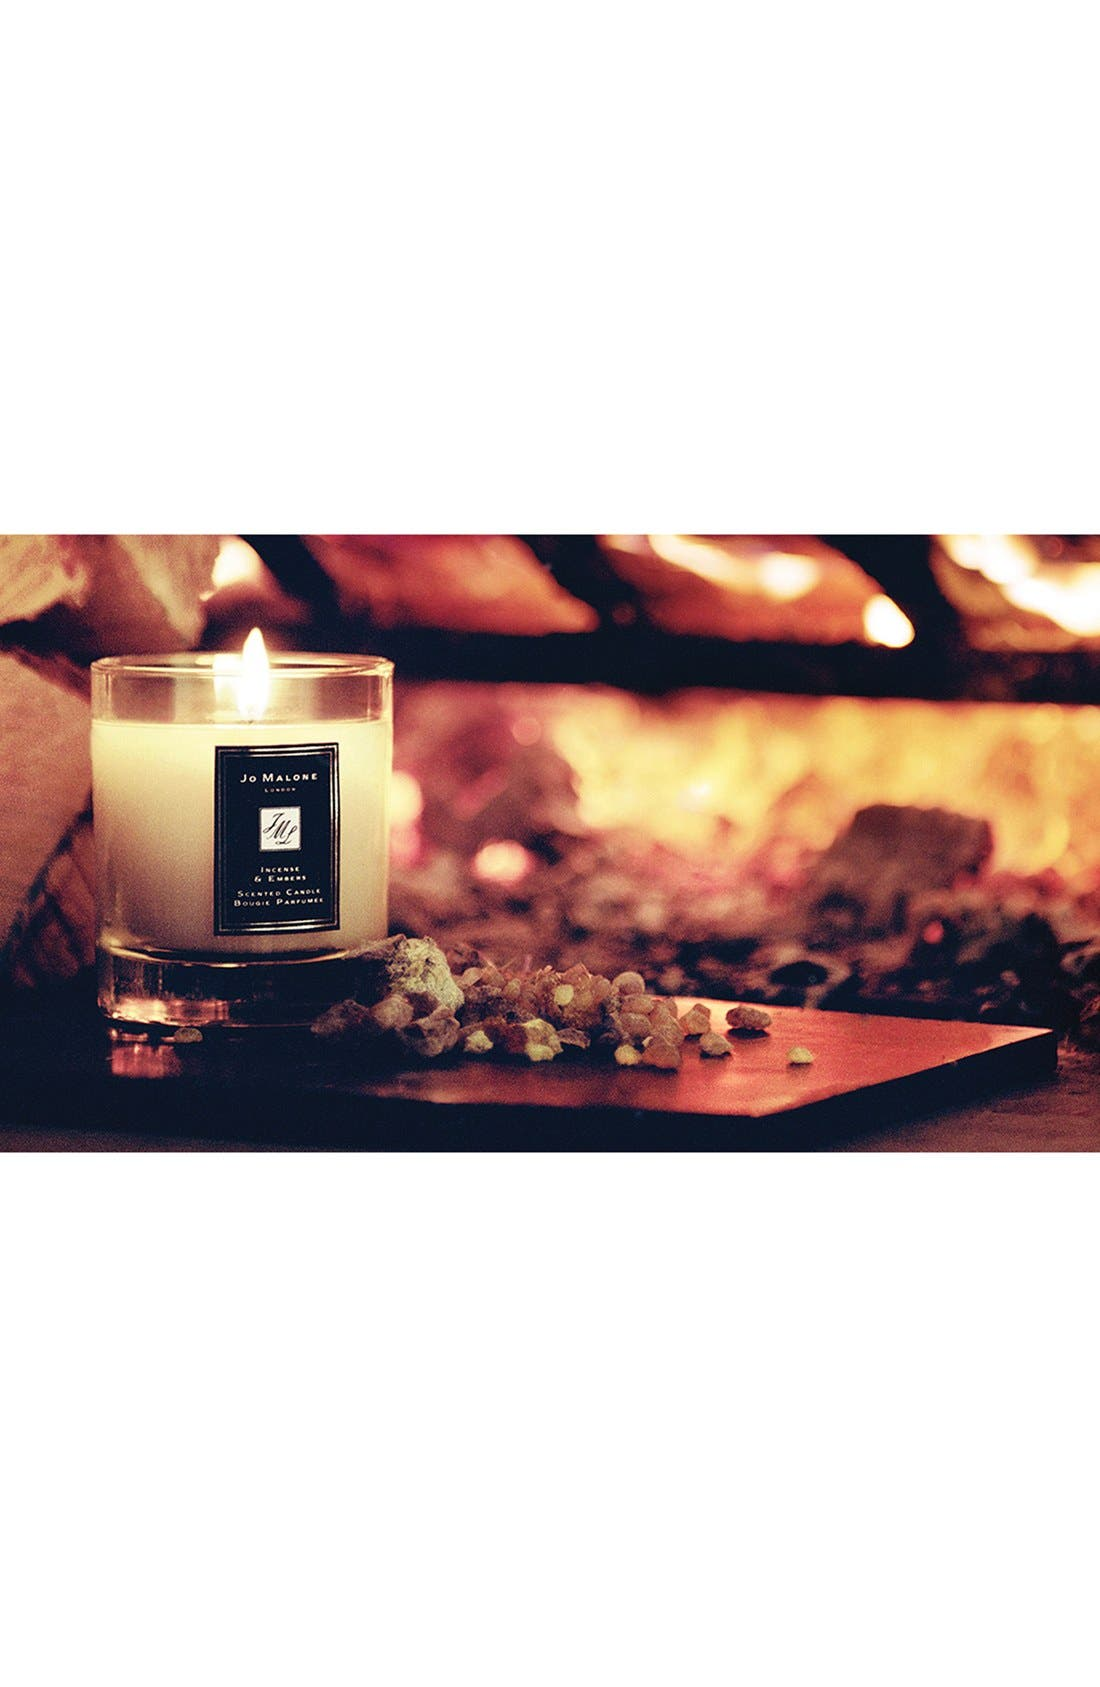 Jo Malone<sup>™</sup> Just Like Sunday - Incense & Embers Candle,                             Alternate thumbnail 3, color,                             NO COLOR